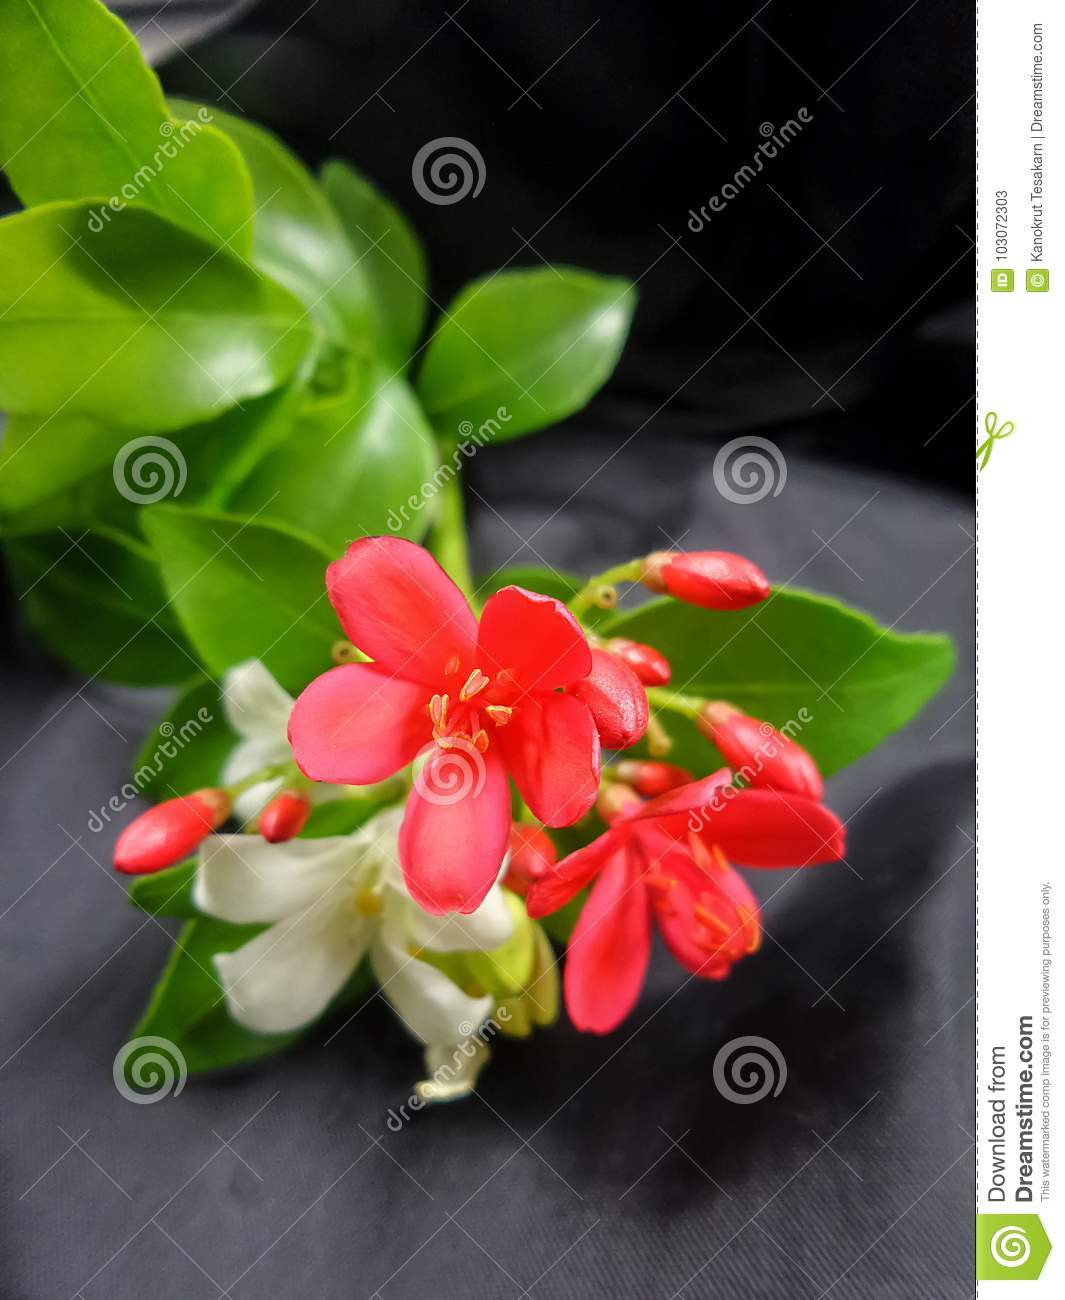 Red and white flowers with green leaves on black backgroud stock download red and white flowers with green leaves on black backgroud stock image image of mightylinksfo